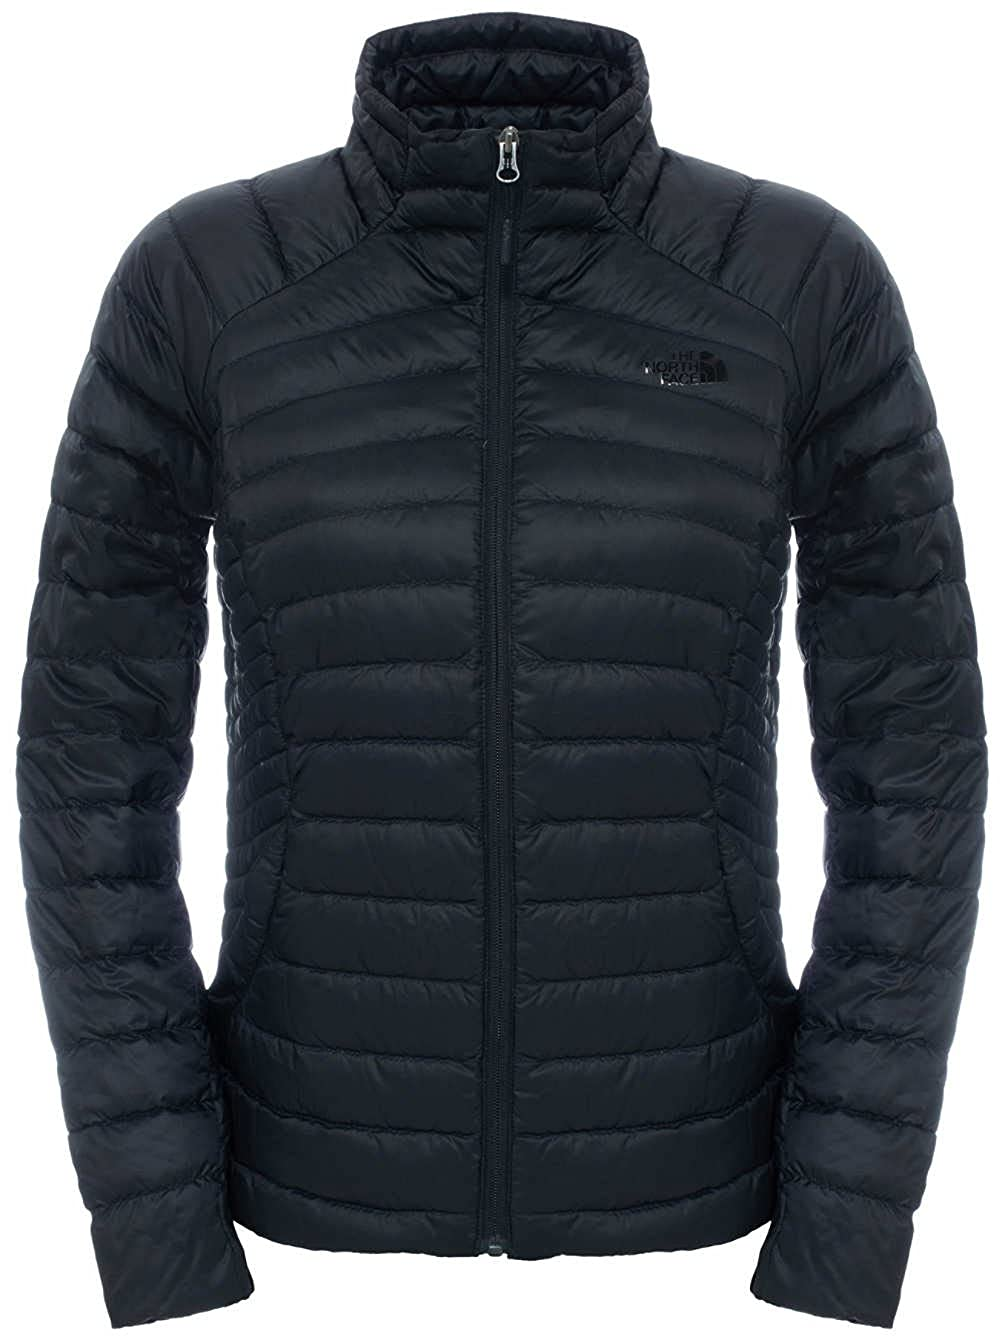 TALLA XS. The North Face W Tonnerro FZ Jacket-EU Chaqueta, Mujer